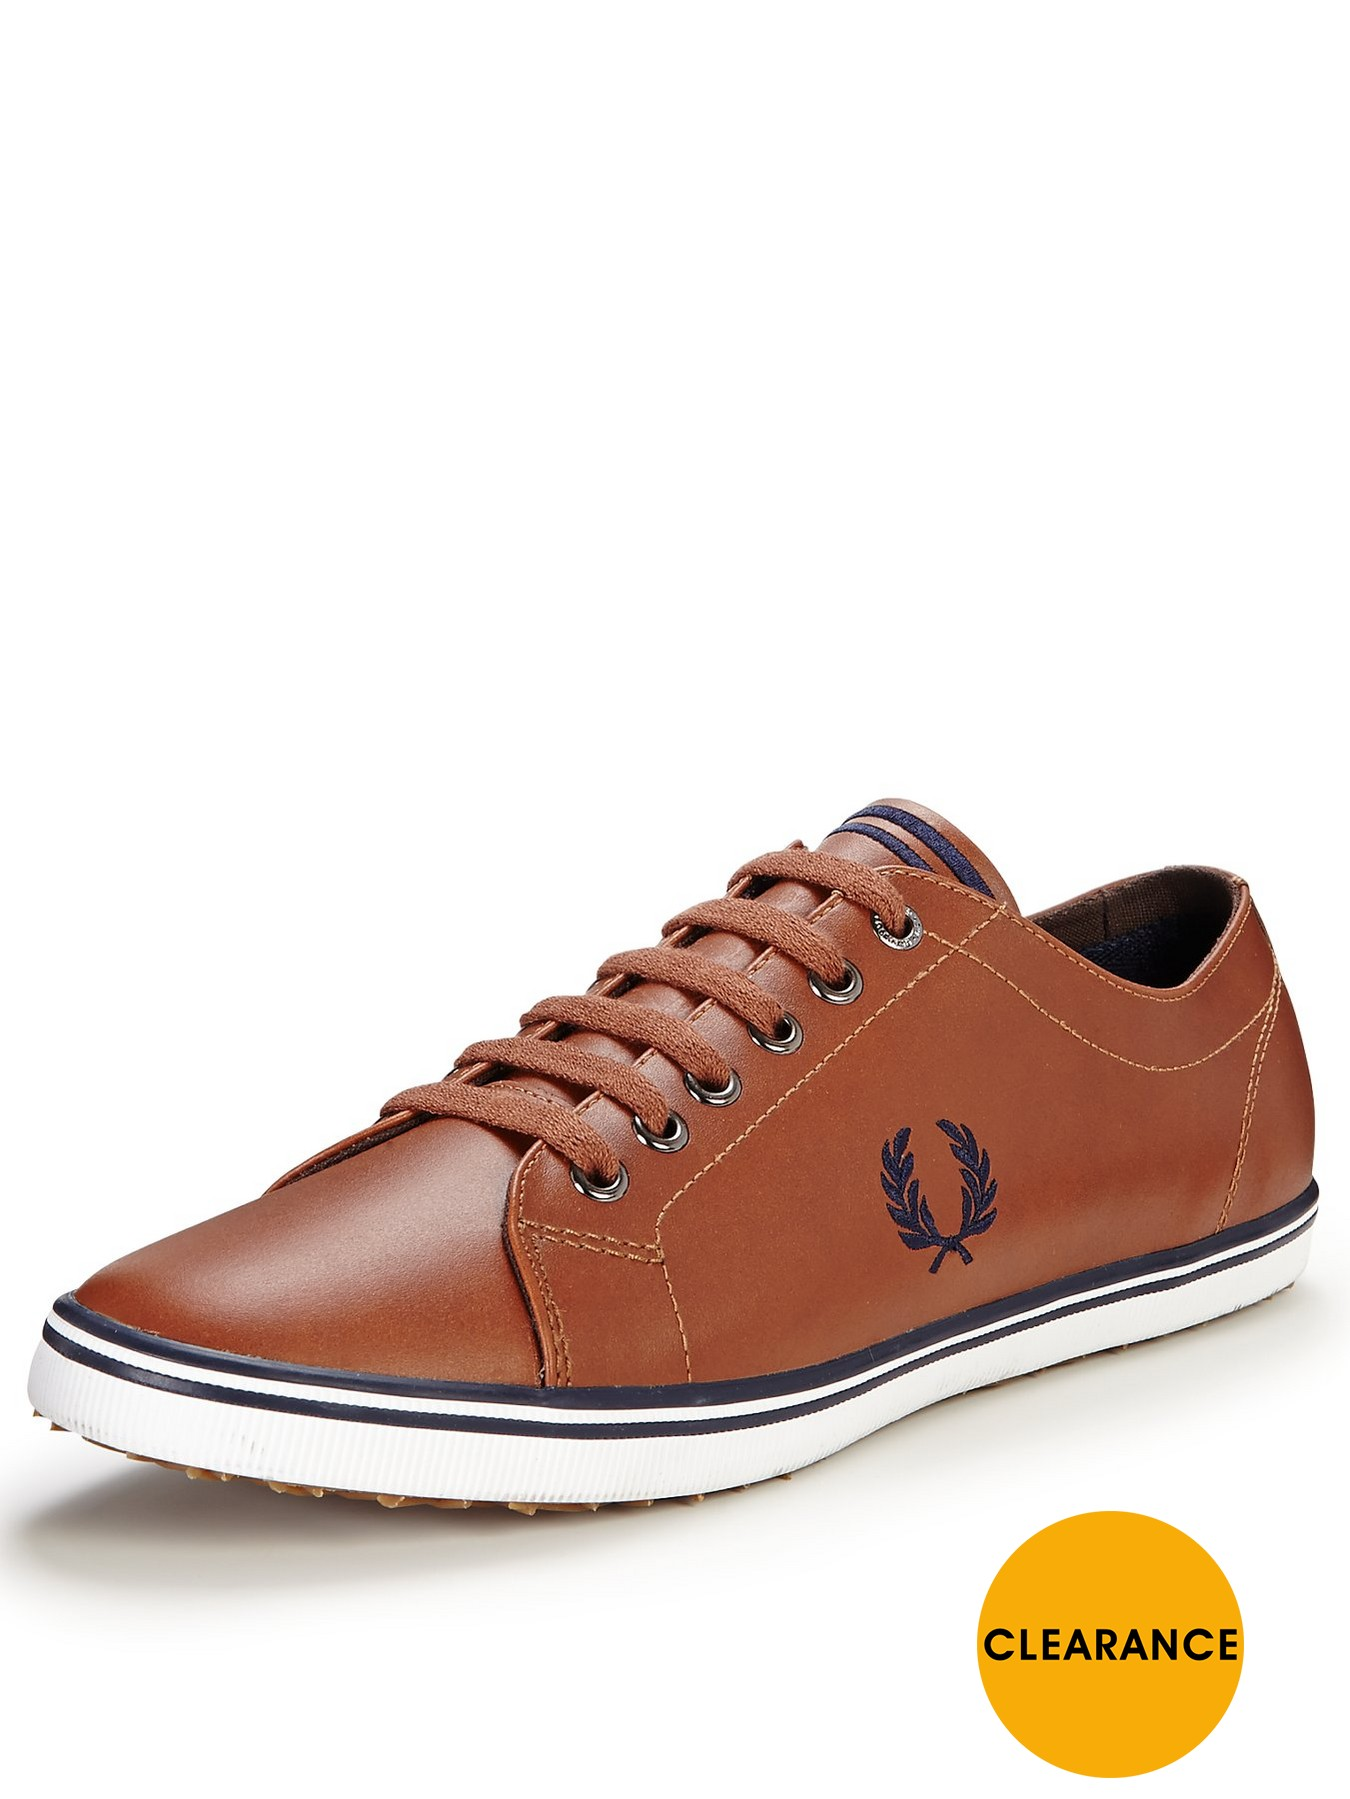 Fred Perry Kingston Leather Plimsolls Tan 1458402095 Men's Shoes Fred Perry Pumps Plimsolls